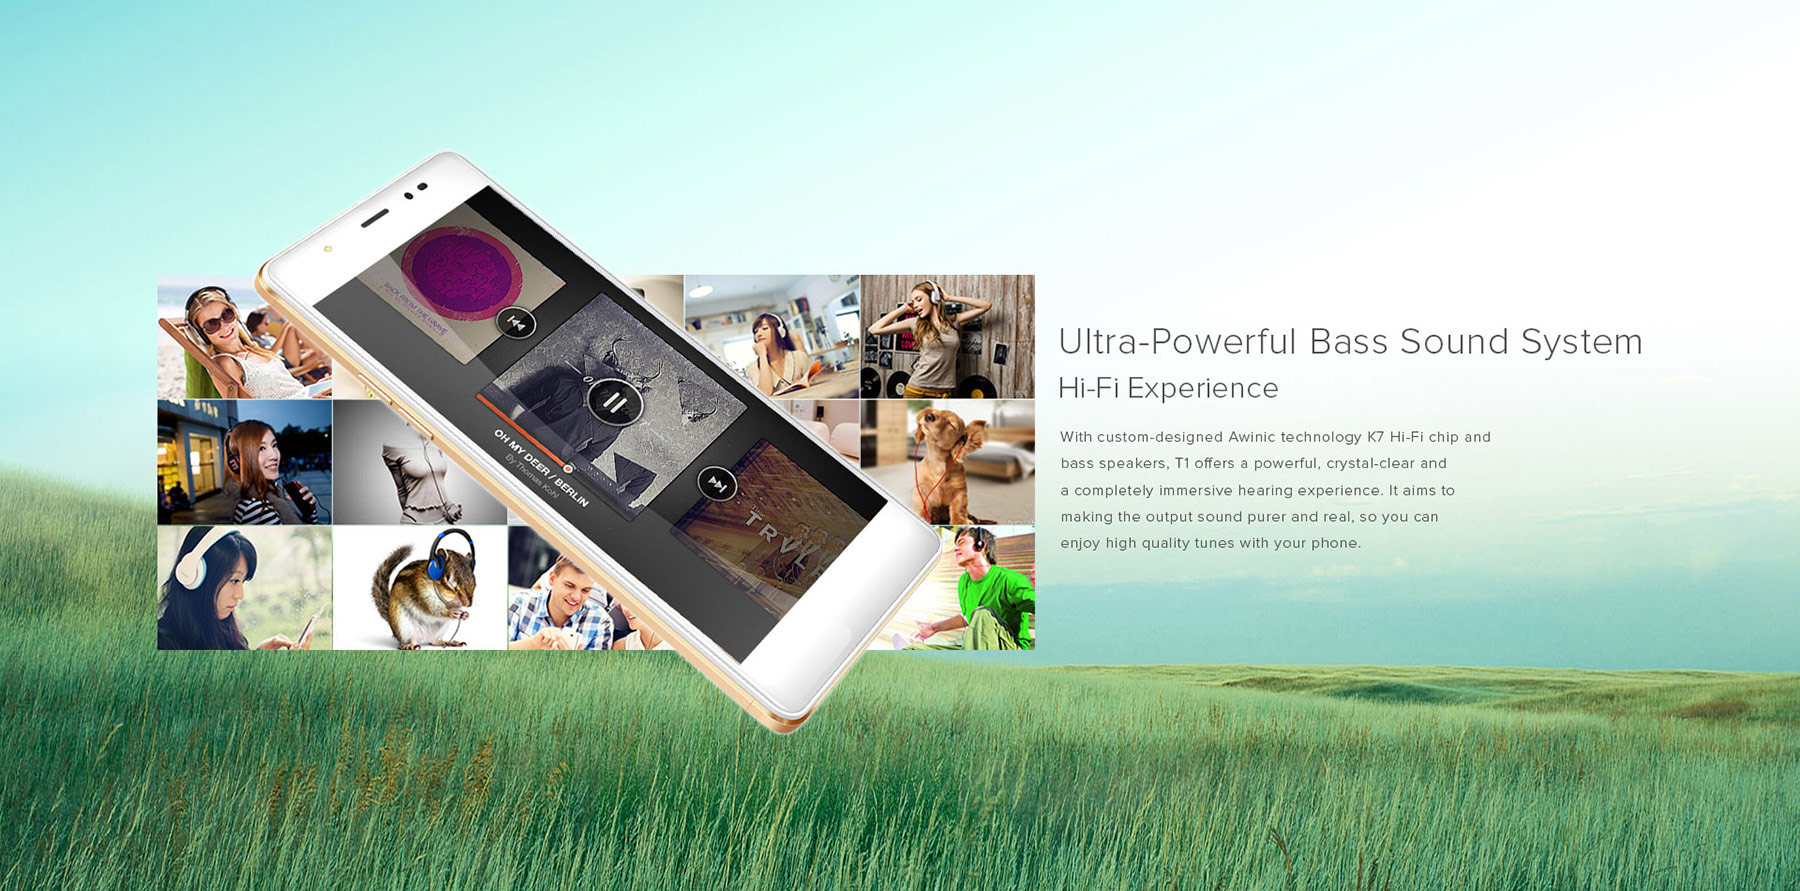 Leagoo T1 Android 6.0 5.0 inch 4G Smartphone MTK6737 Quad Core 1.3GHz 2GB RAM 16GB ROM Fingerprint Scanner Bluetooth 4.1 GPS